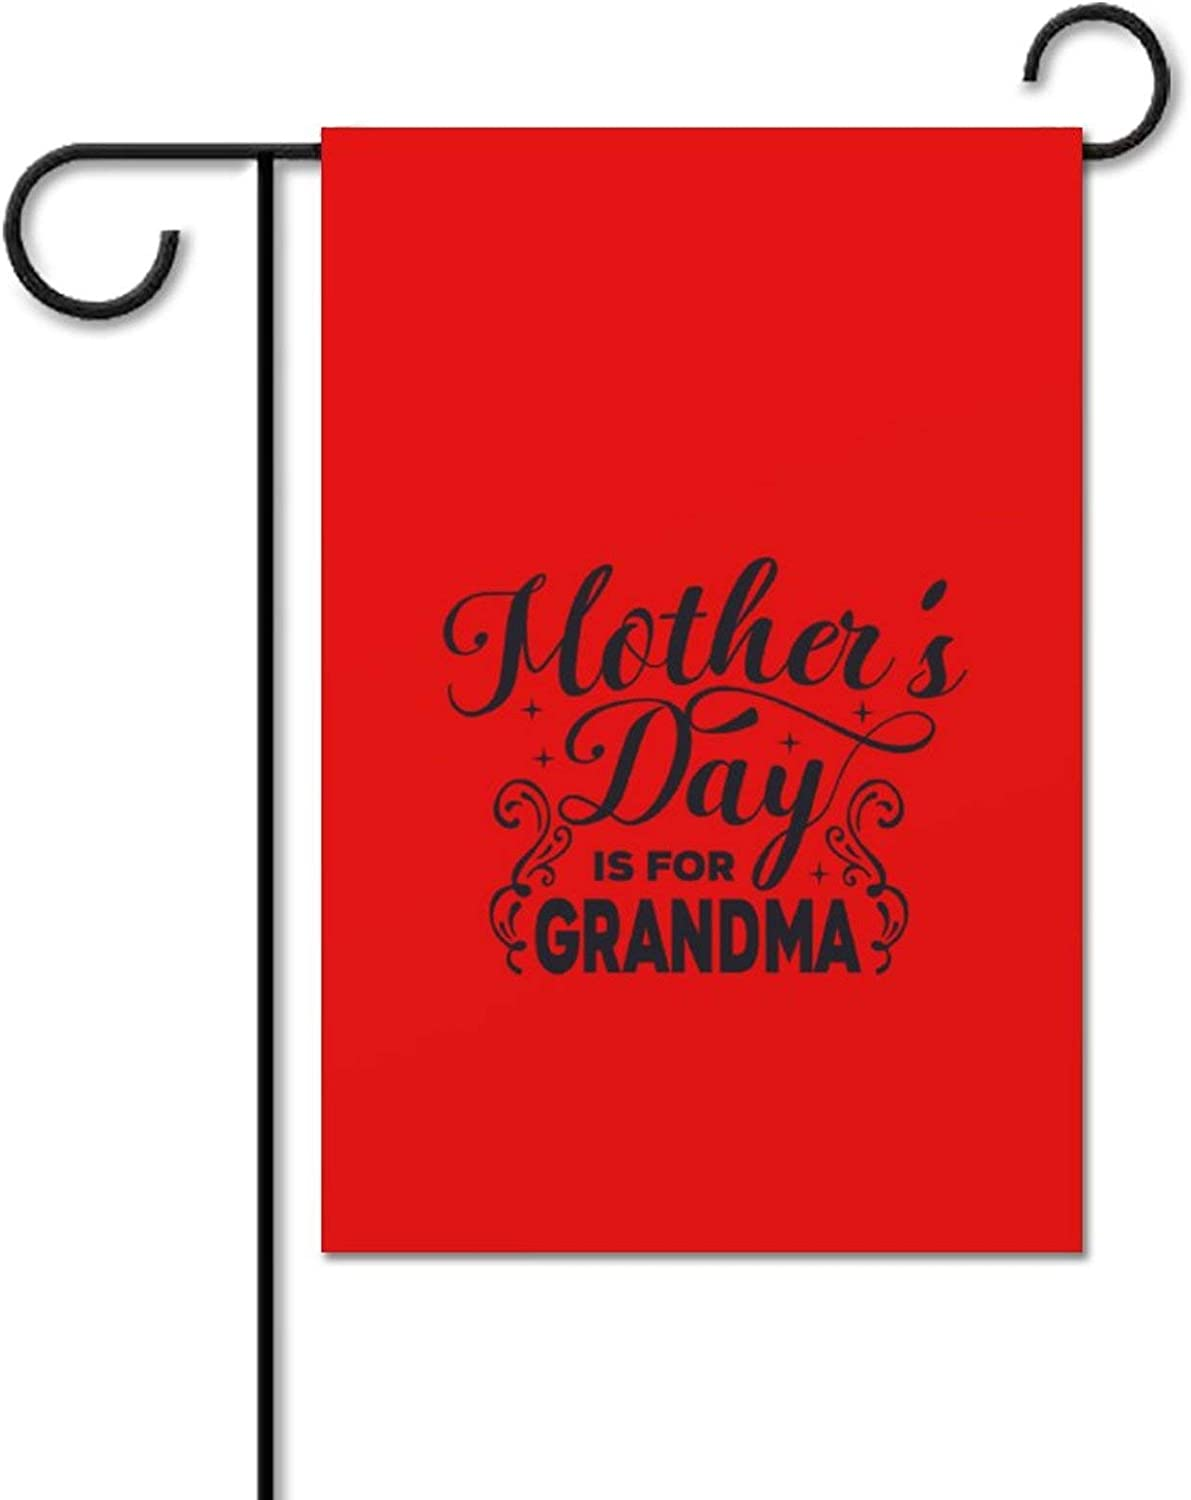 Garden Flag Mothers Day is for Grandma Flag, Olive Garden Flag, Secret Garden Flag, Garden Centre Flag, Garden Flag for Outside, Yard Outdoor Decoration The Best Gift